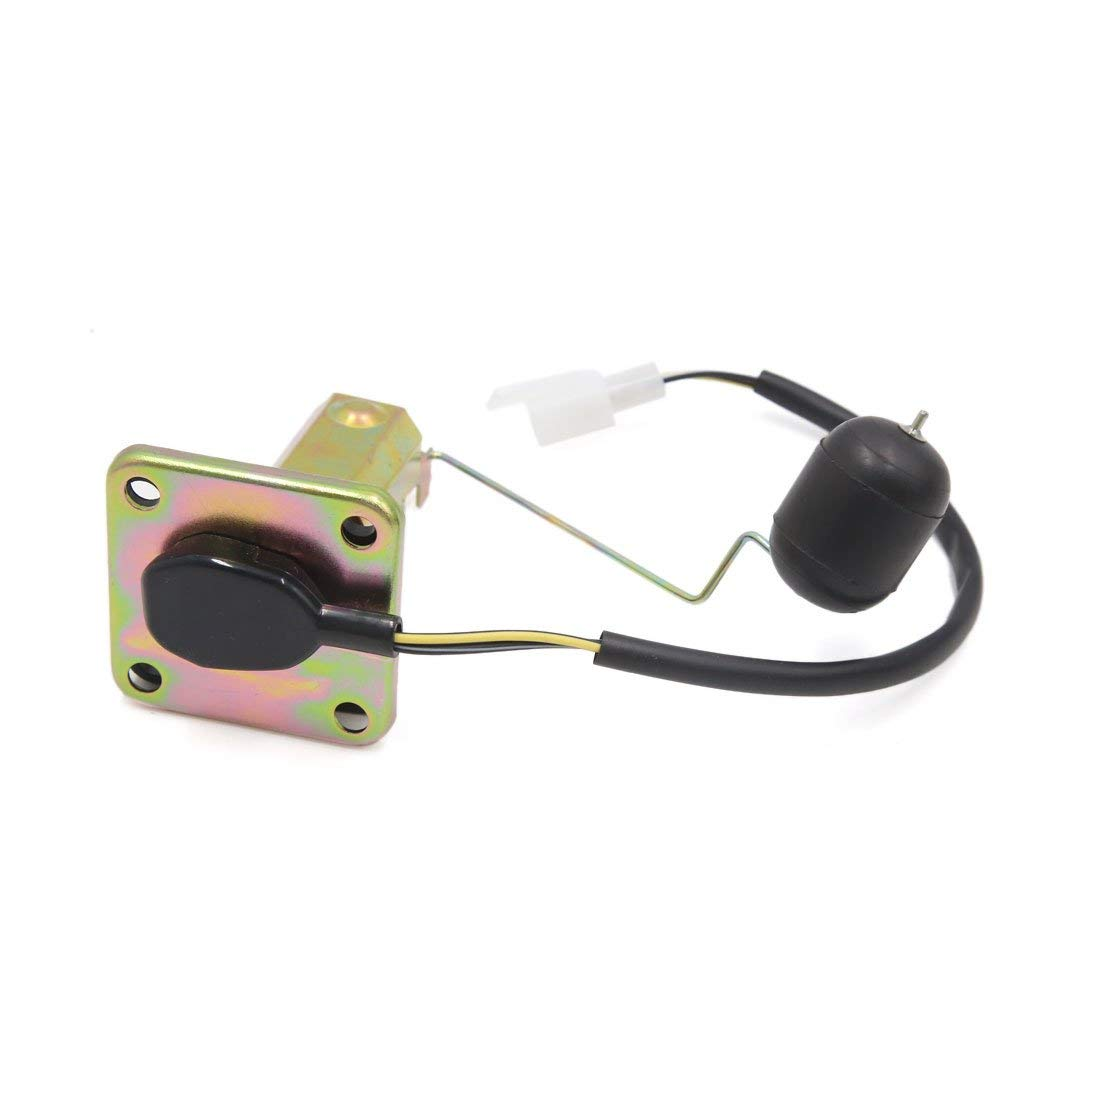 Uxcell Motorcycle Scooter Fuel Tank Level Float Sensor Sending Unit For HJ100T-7 Fuel Level Sending Unit